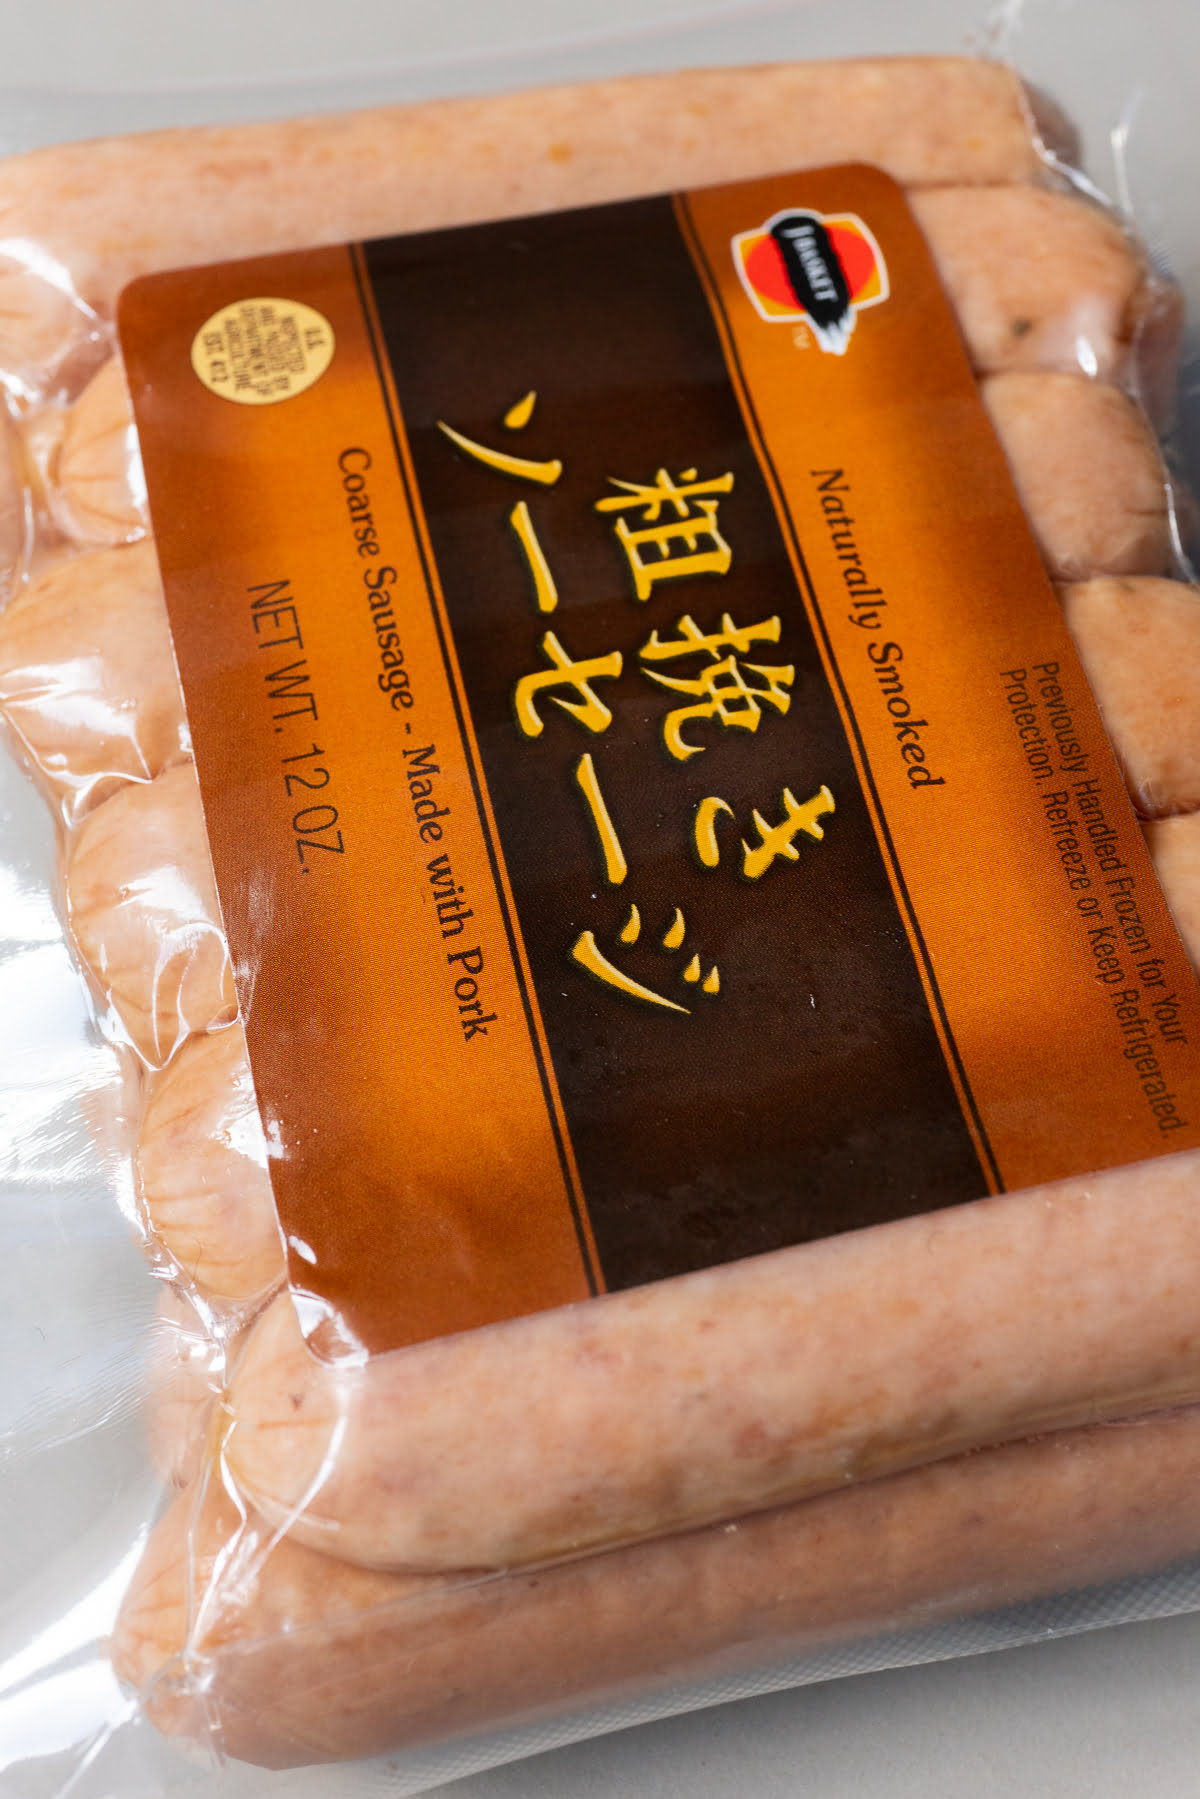 A package of Japanese sausage.